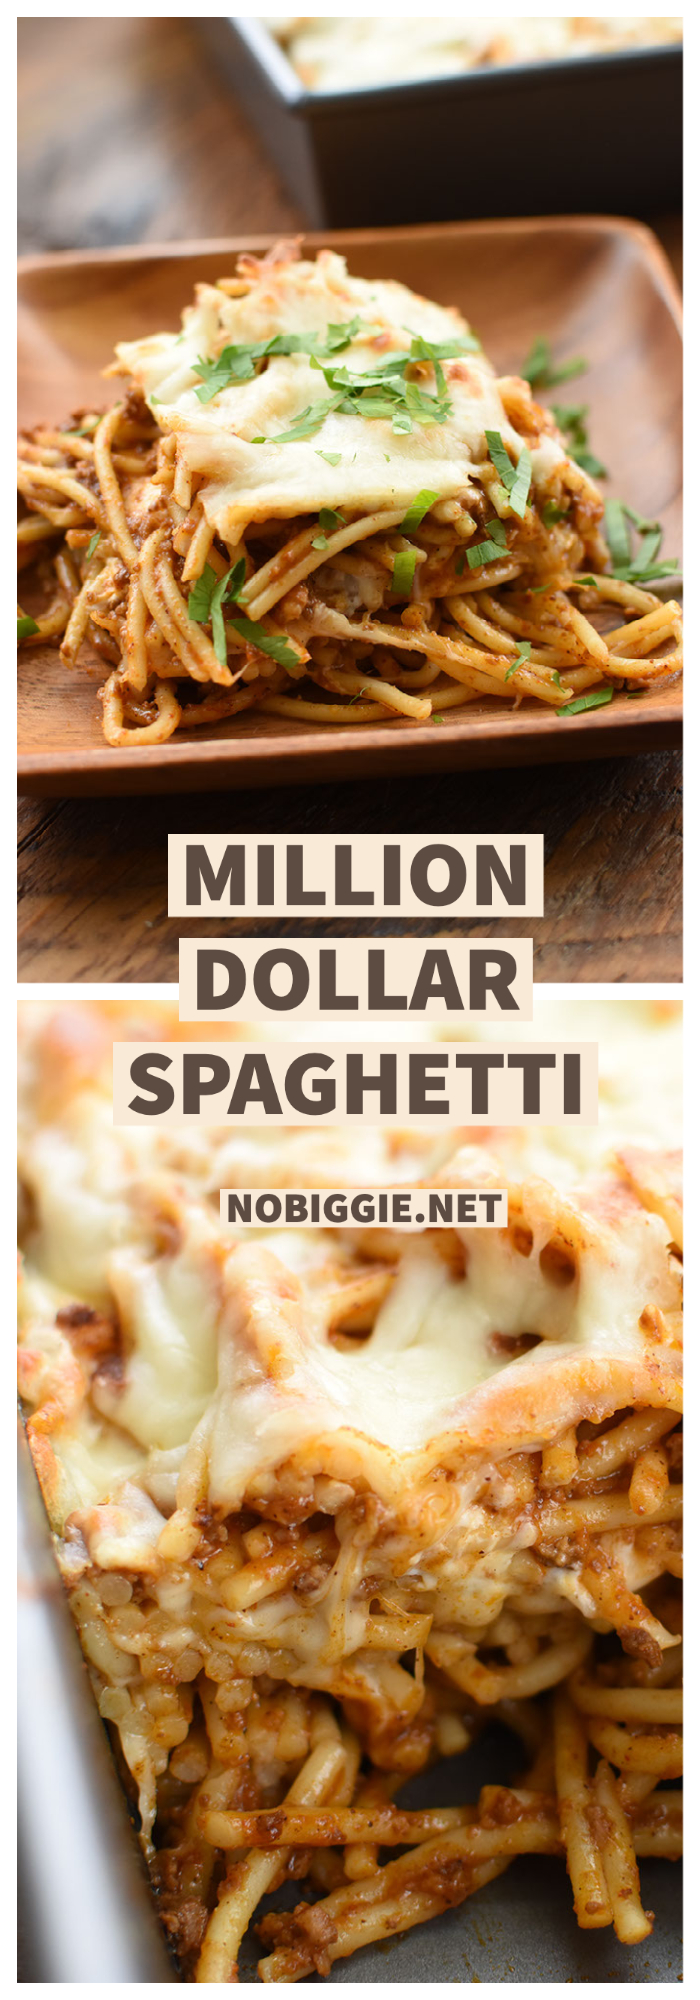 million dollar spaghetti | NoBiggie.net